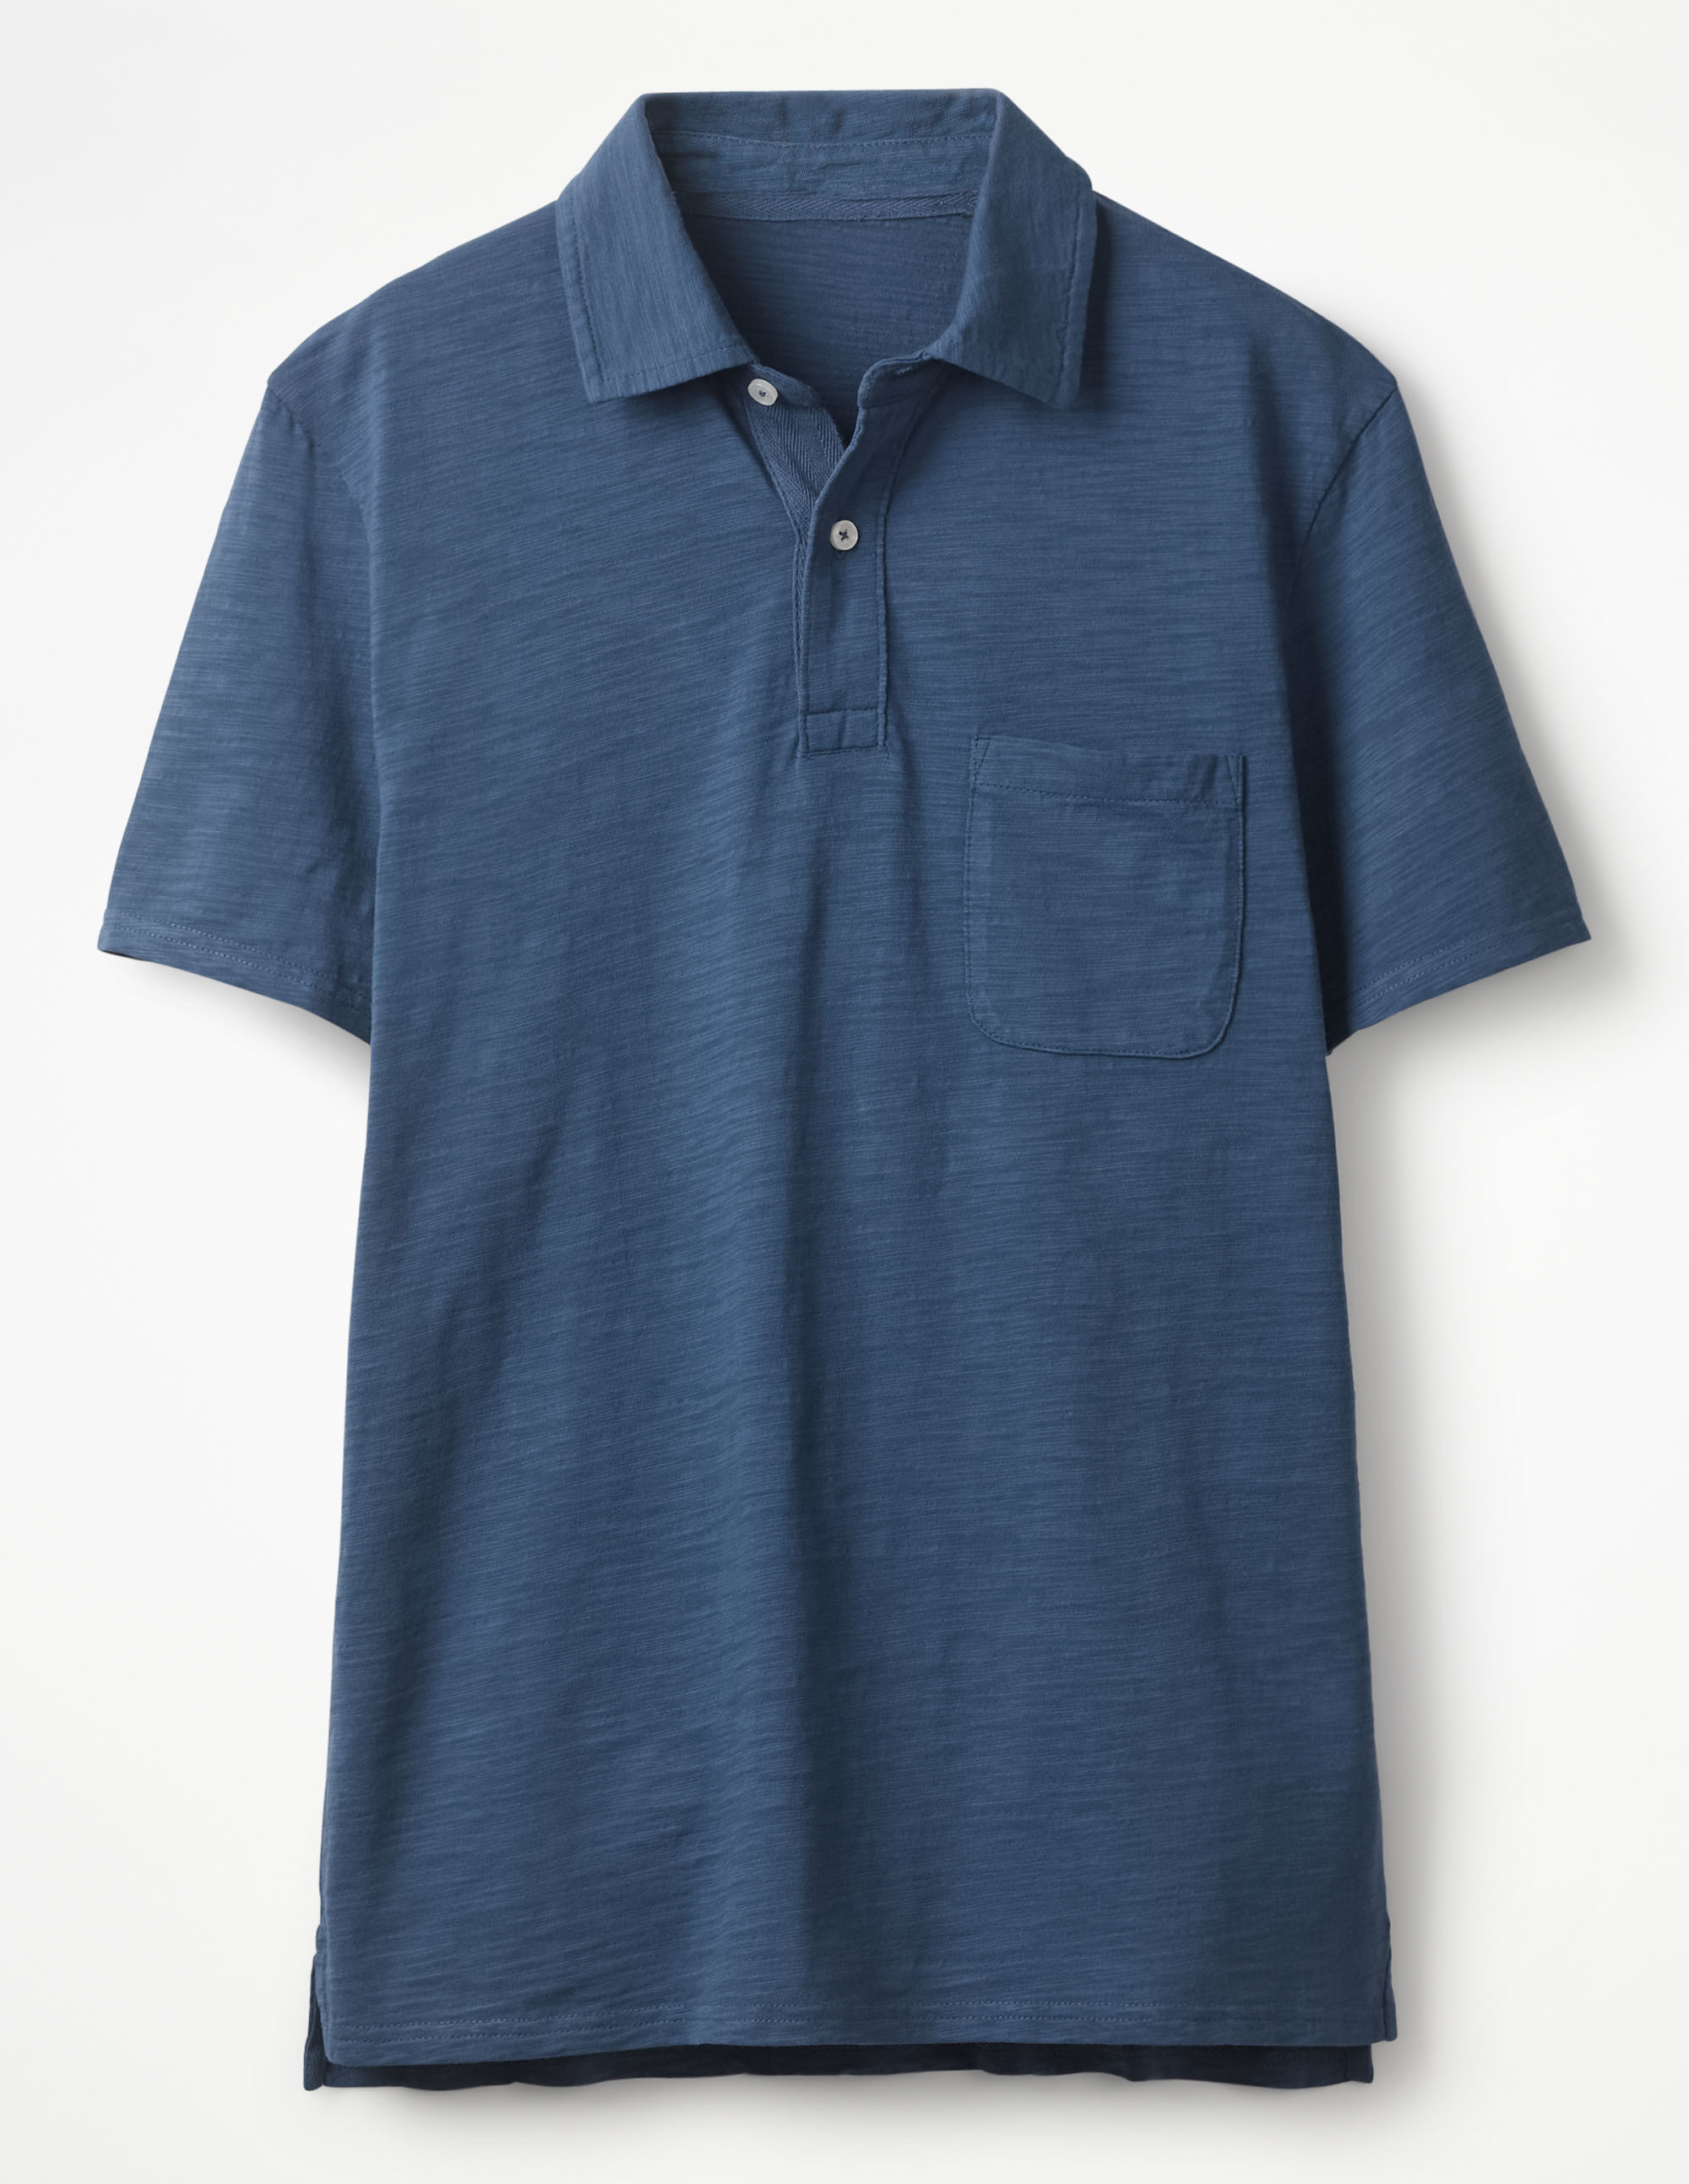 Boden Sandown Blue Slub Polo